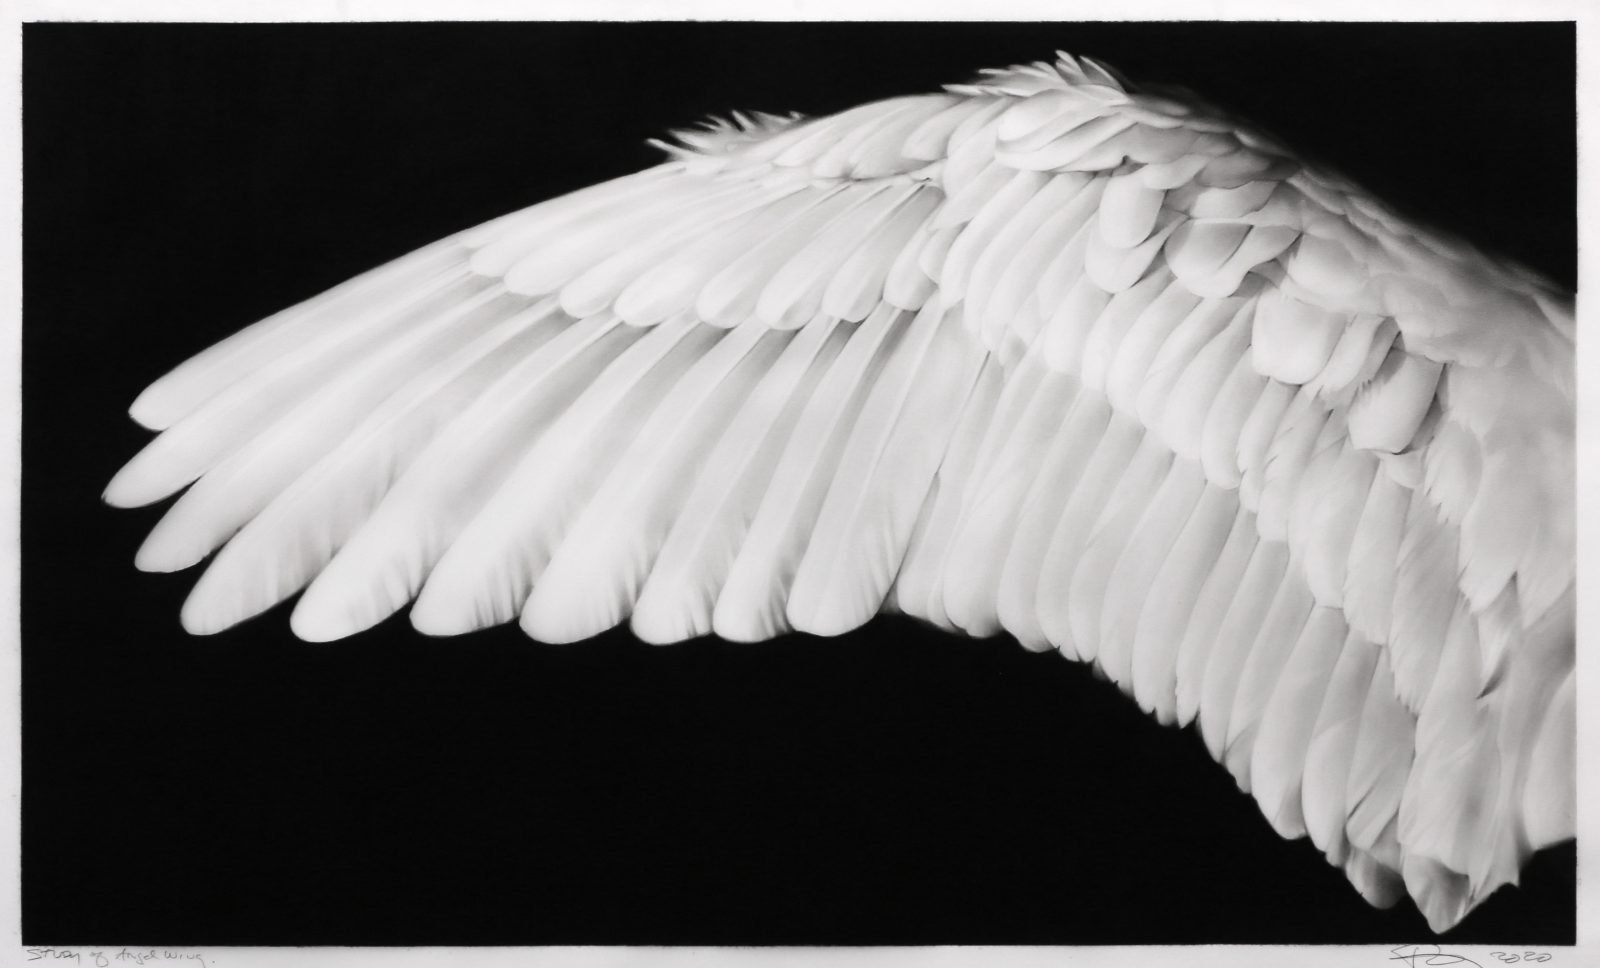 Image: Robert Longo, Study of Angel Wing, 2020. Ink and charcoal on vellum. Courtesy the artist and Metro Pictures, New York.